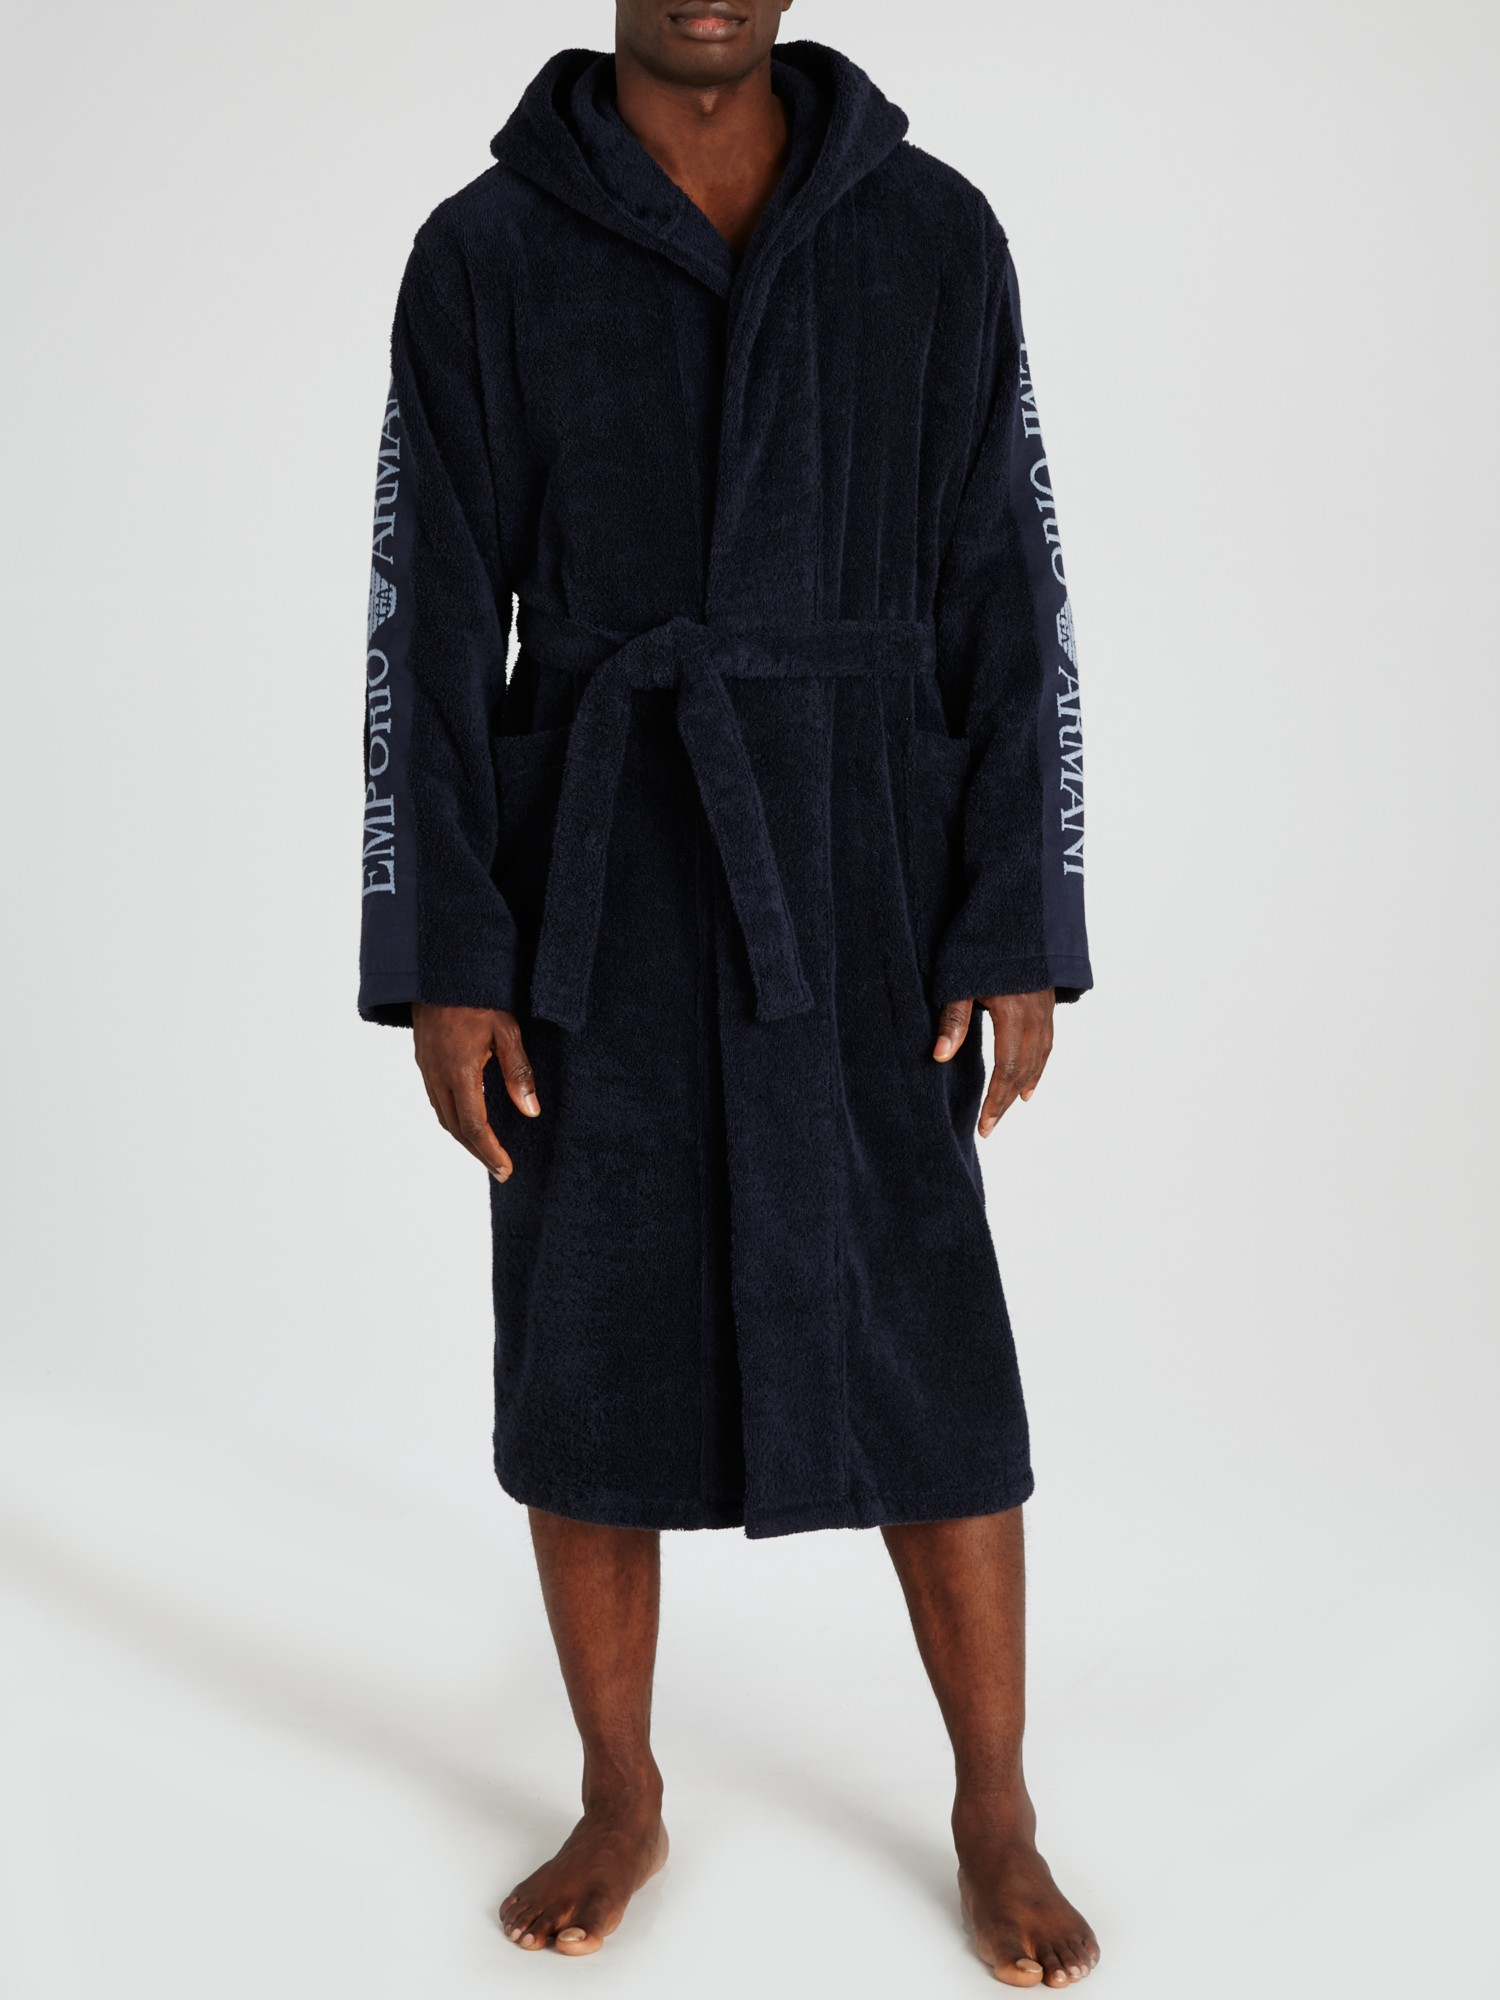 Emporio Armani Towel Robes in Blue for Men - Lyst 9ba624f84